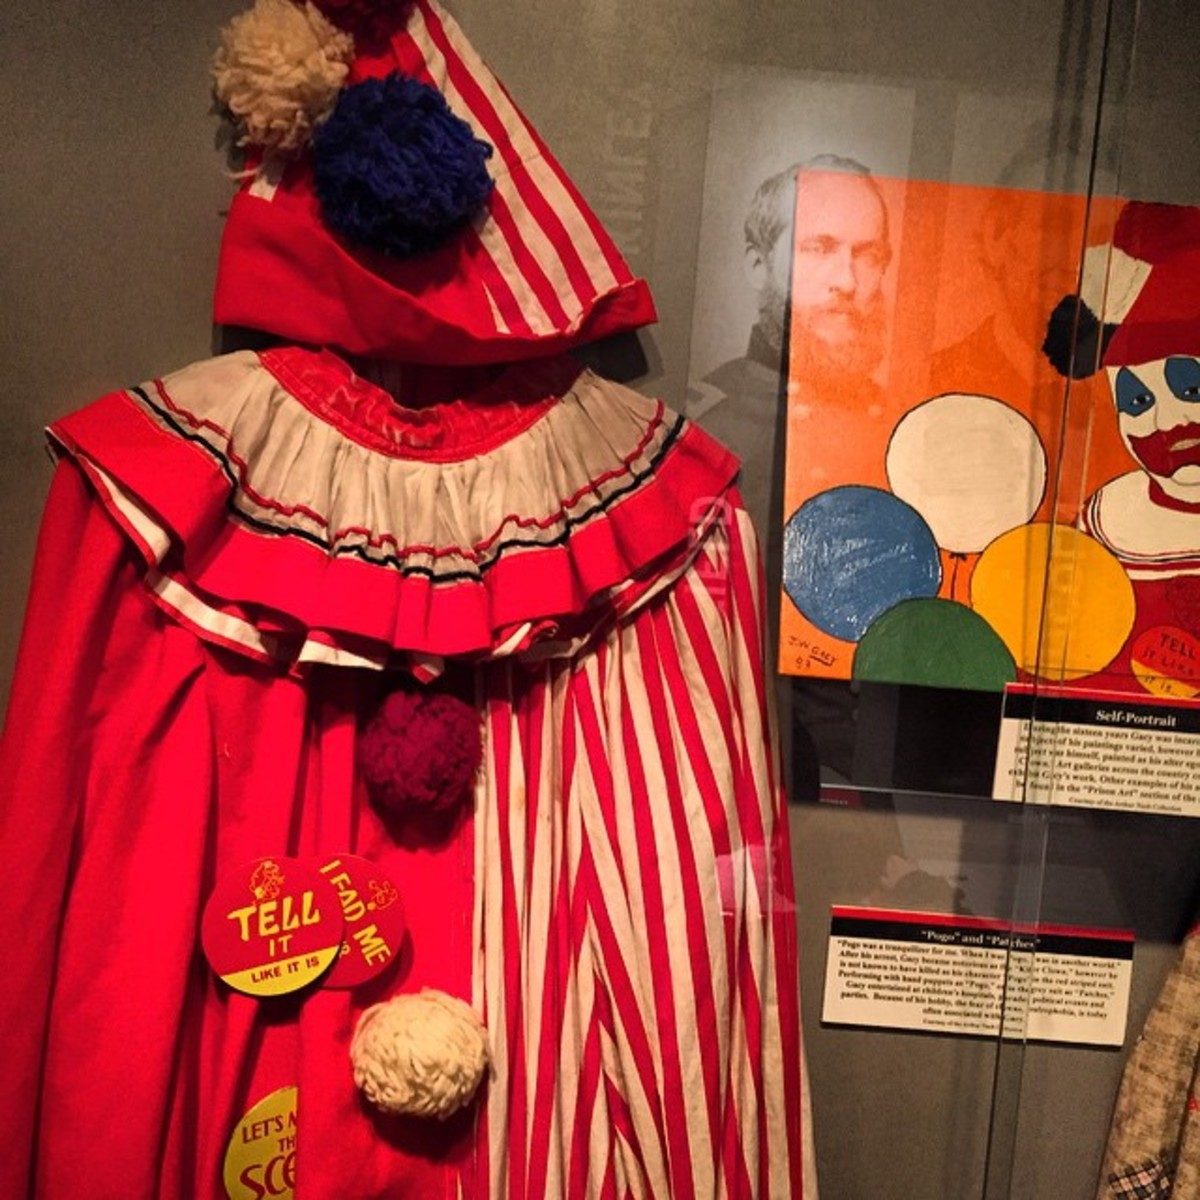 John Wayne Gacy's clown suit.